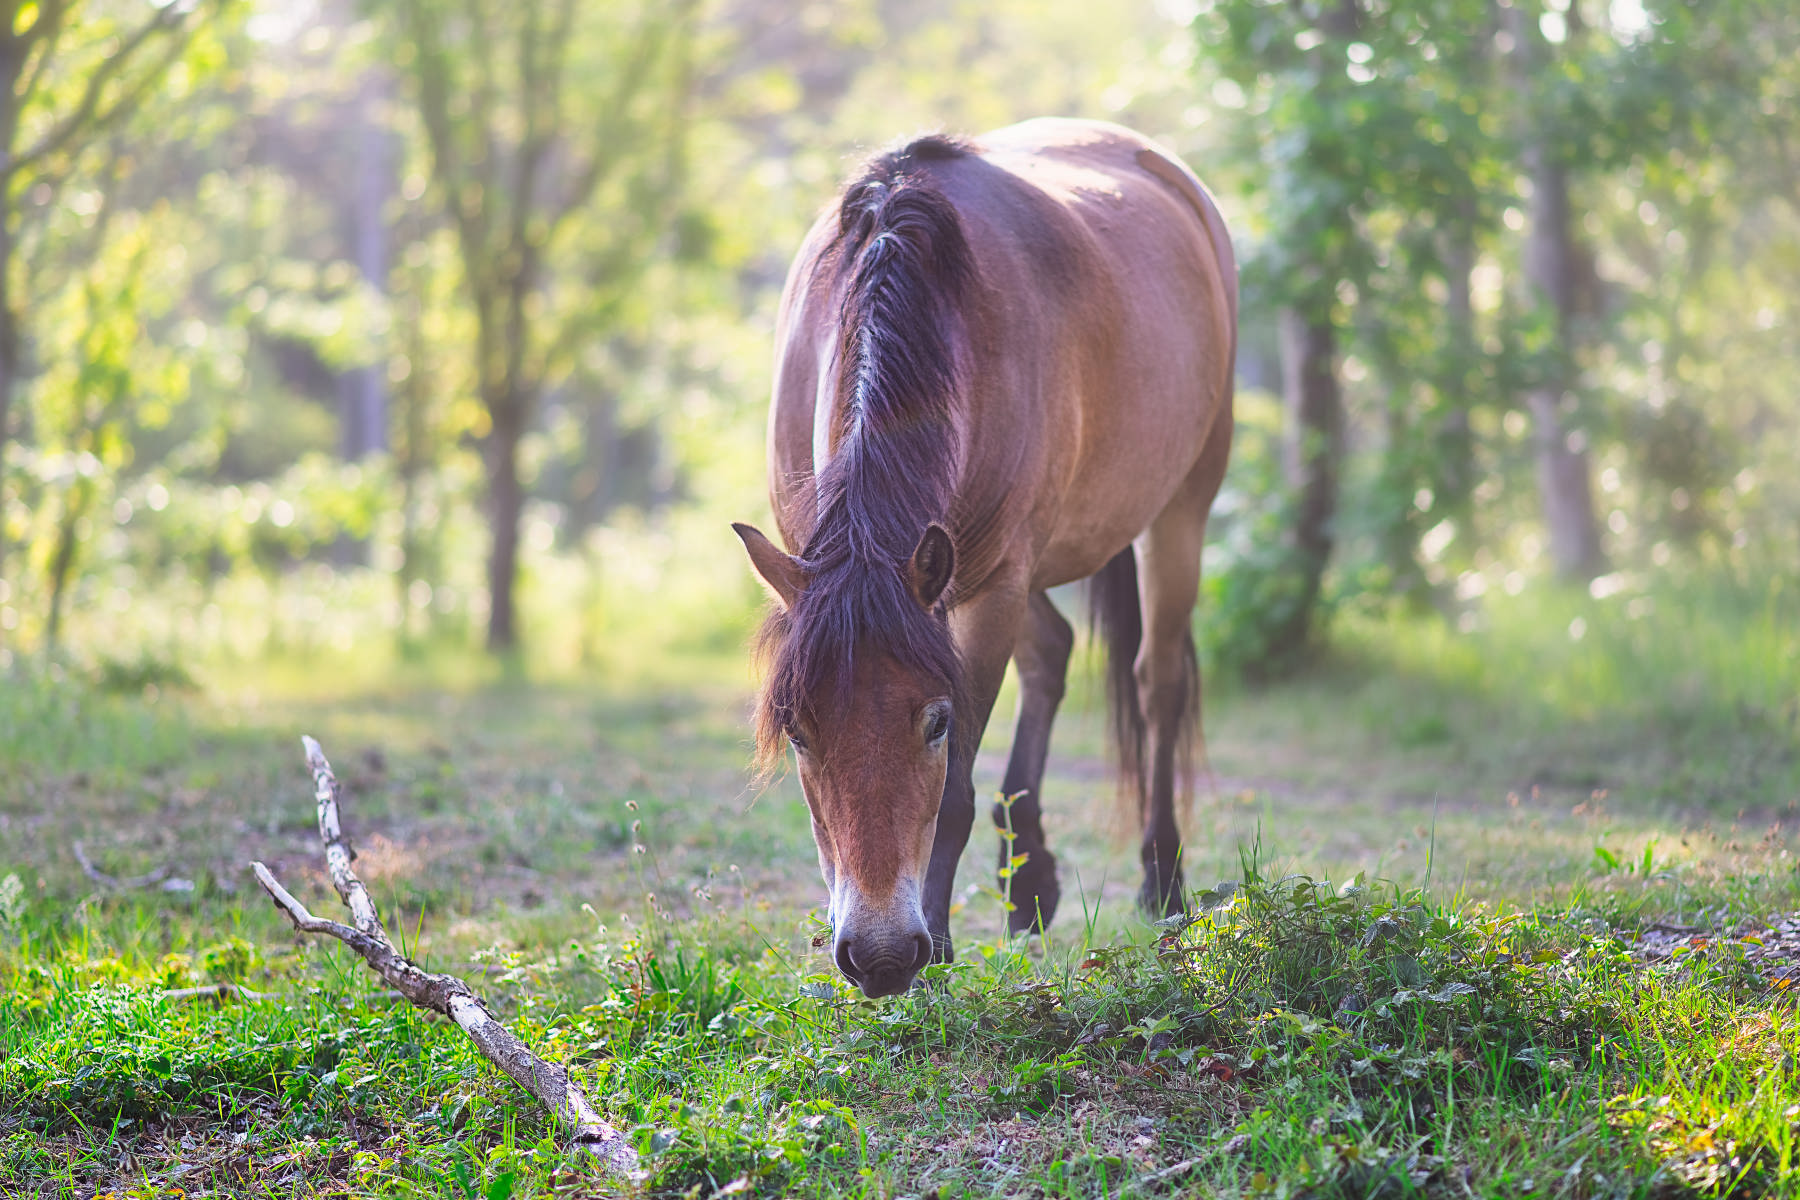 horse grazing at verge of sunny forest lane